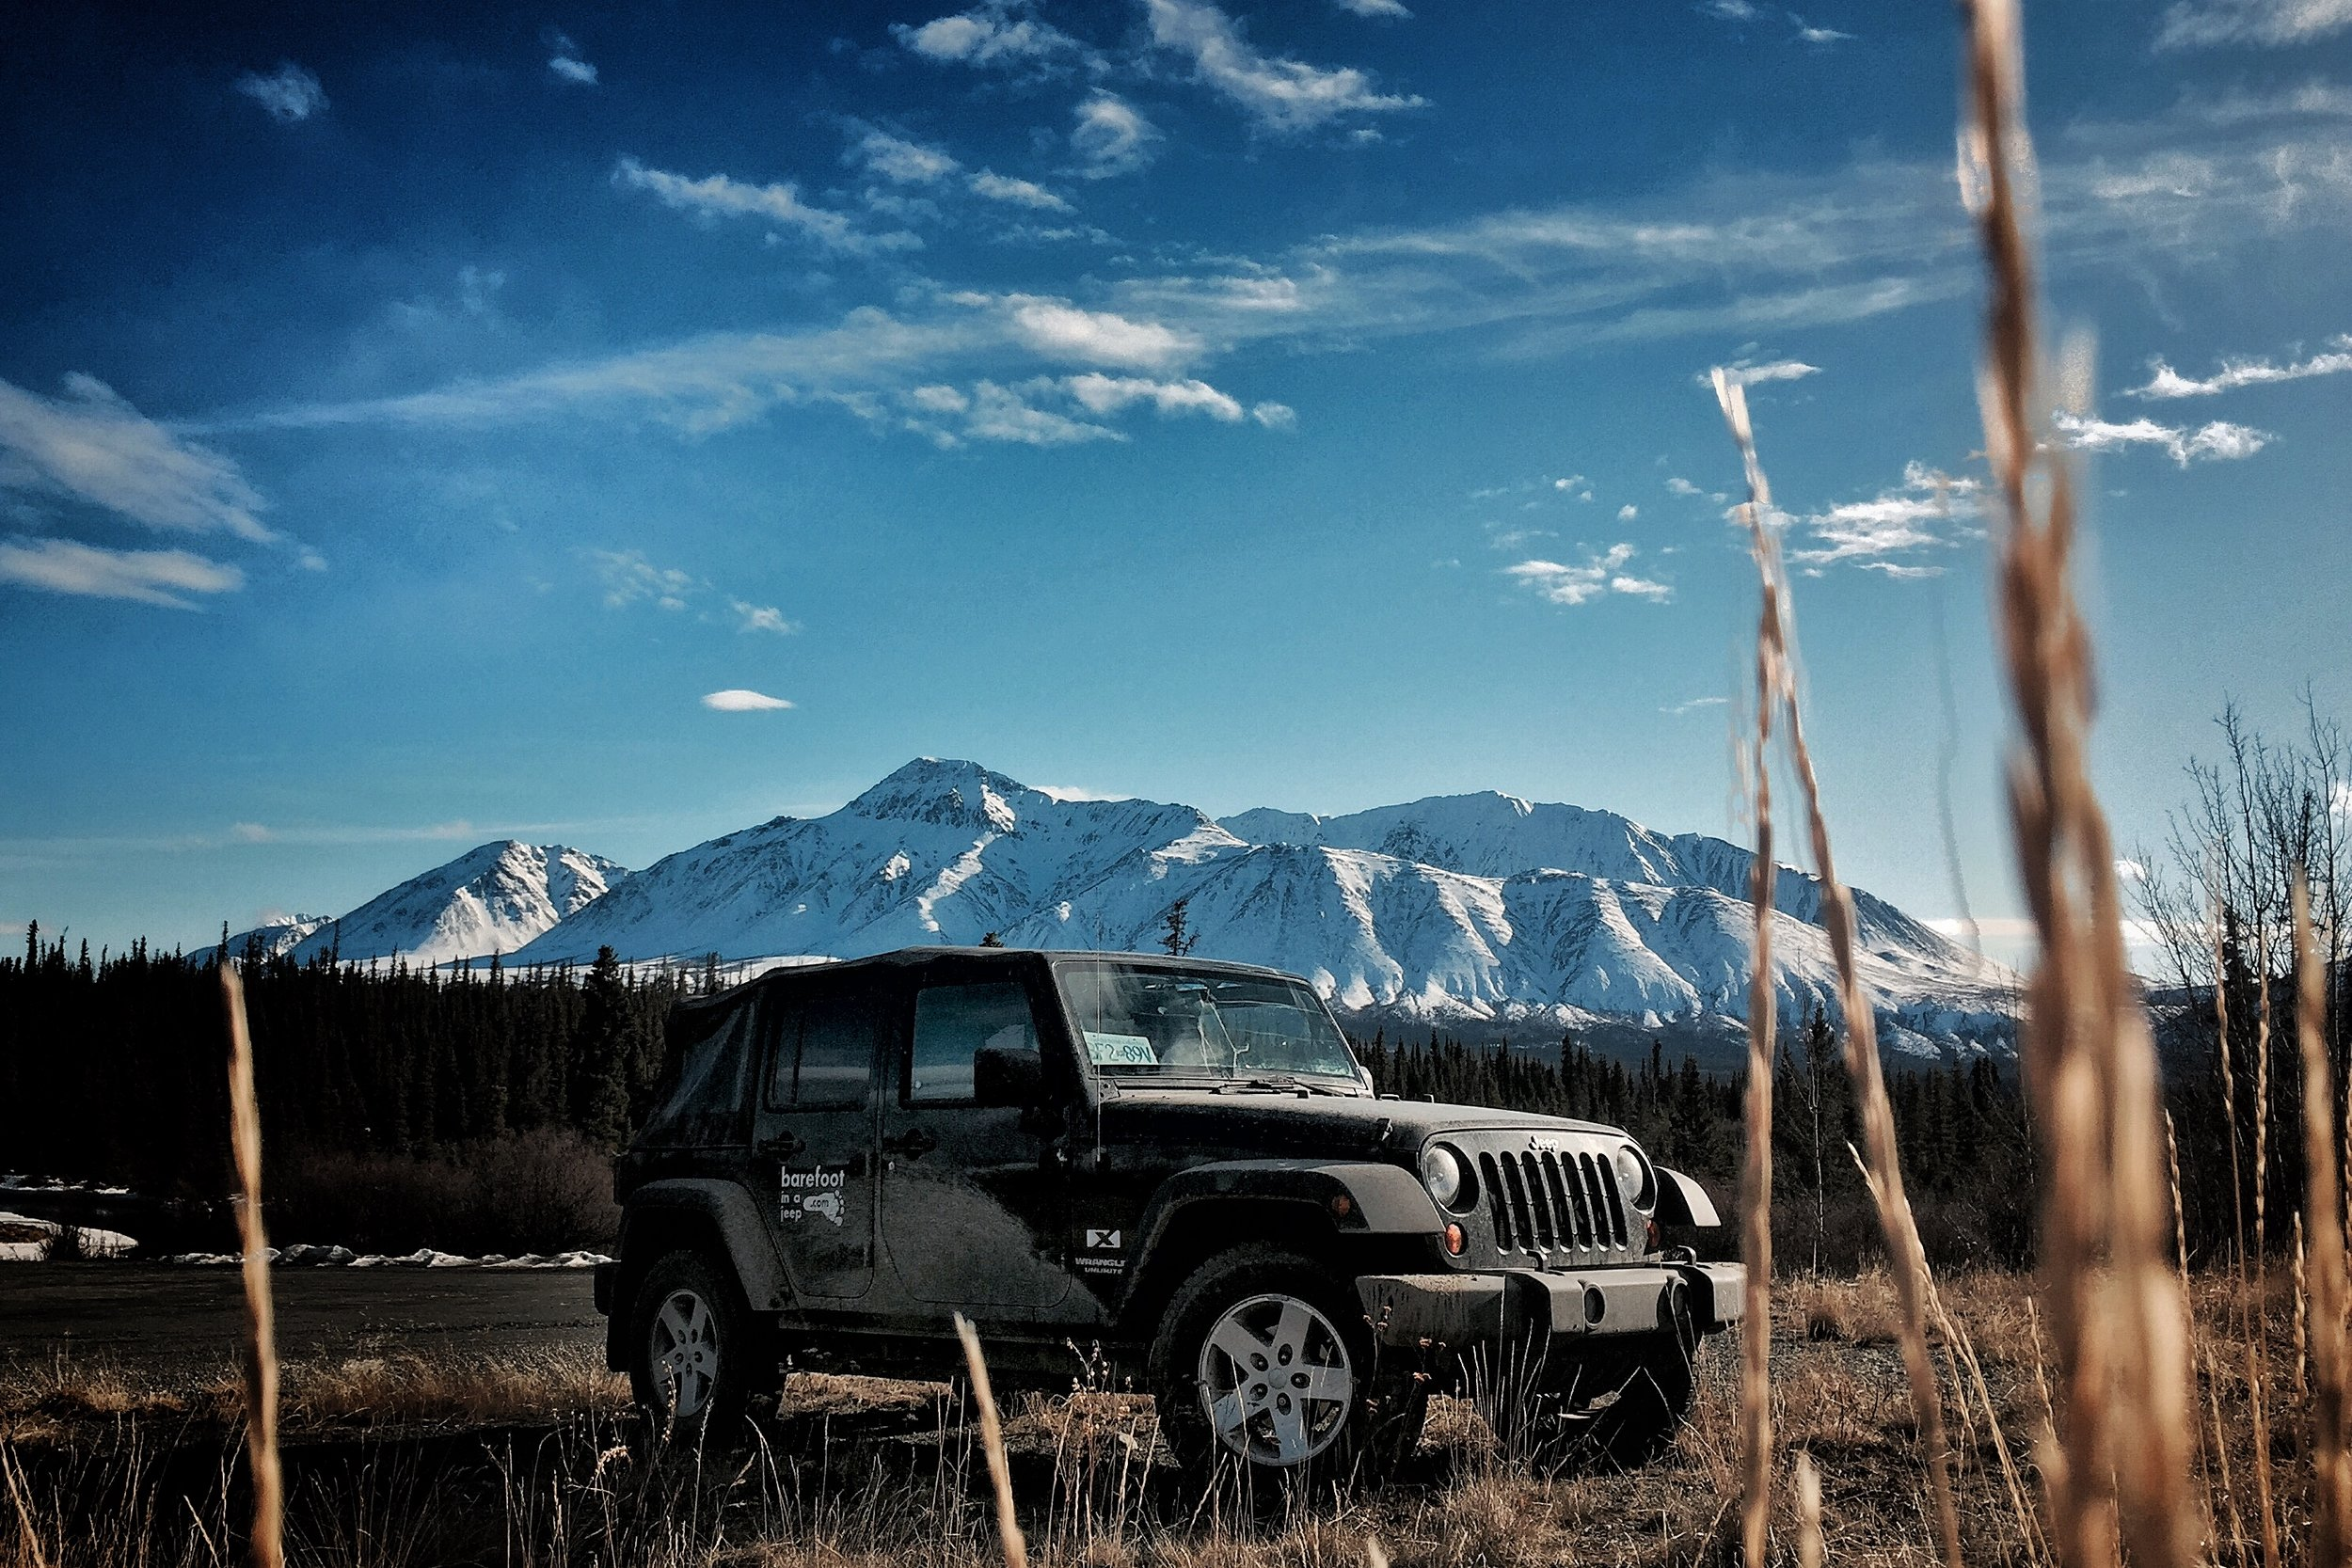 The Jeep posing around Haines Junction in the Yukon Territory, Canada.